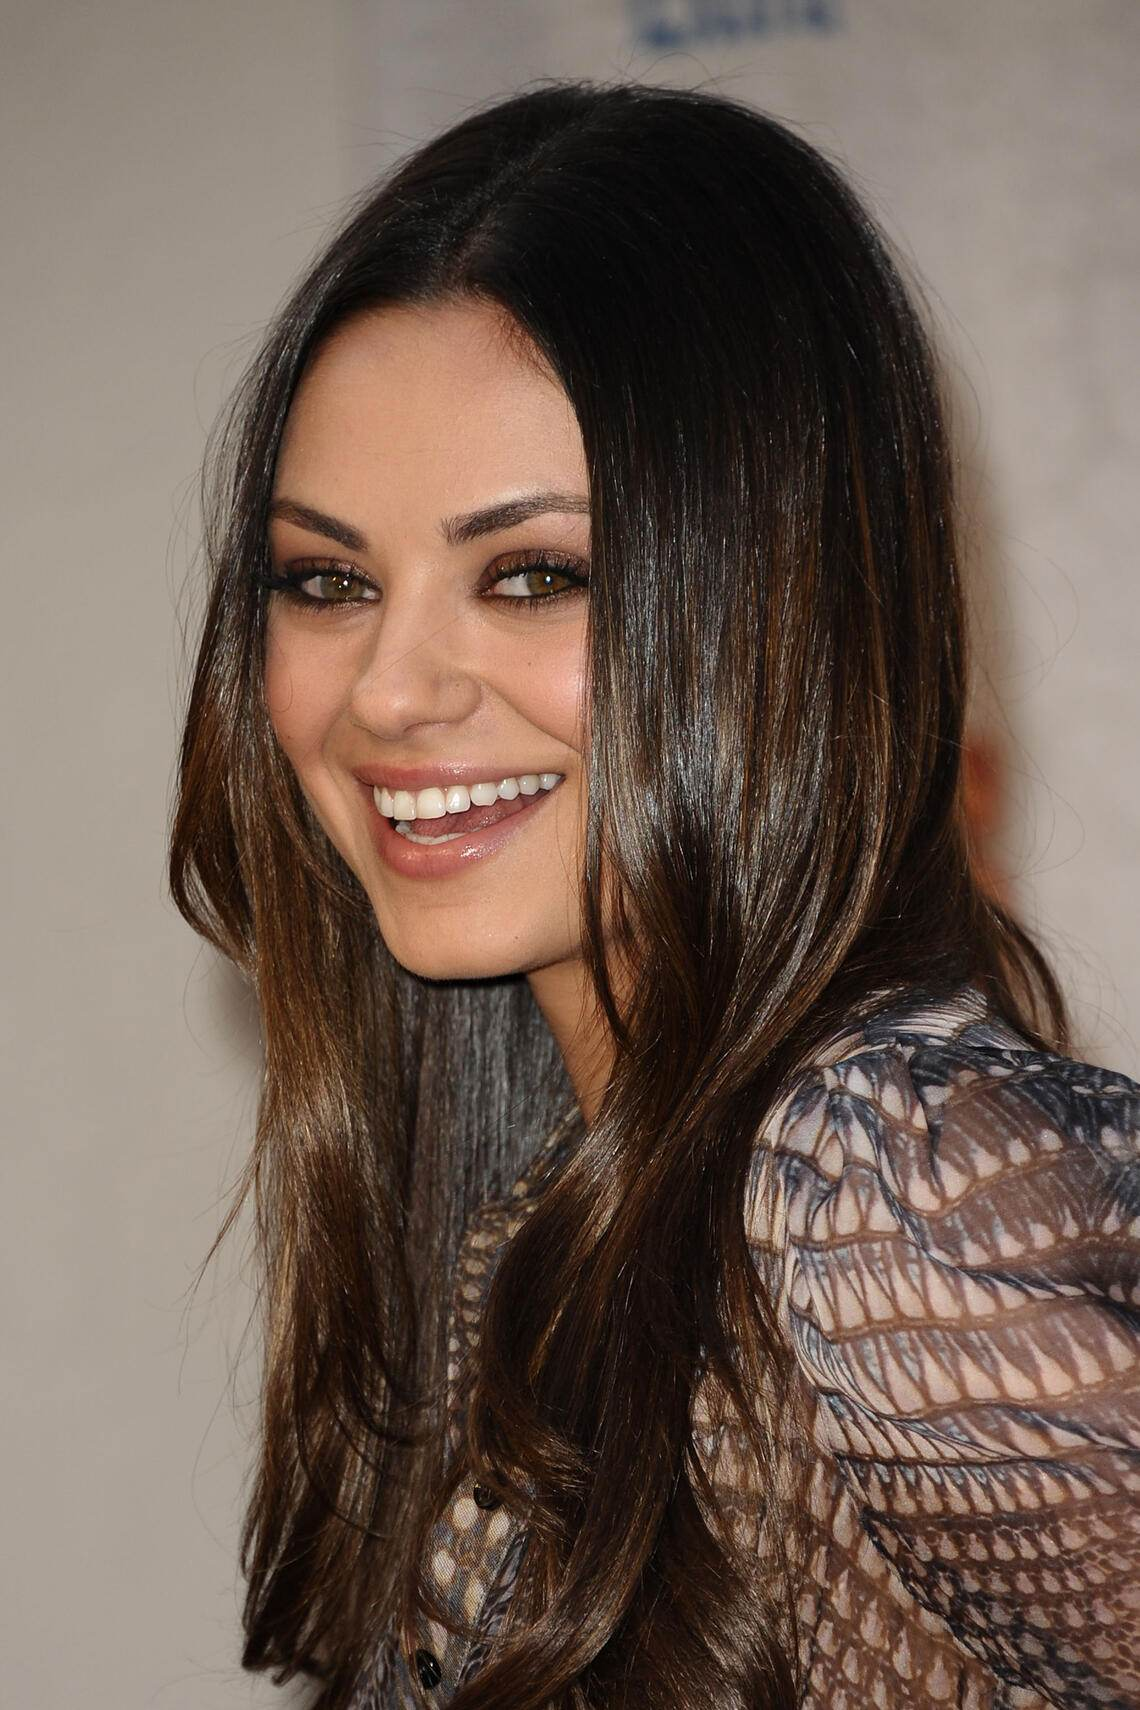 Mila Kunis Friends With Benefits Macaulay Culkin Justin Timberlake Black Swan